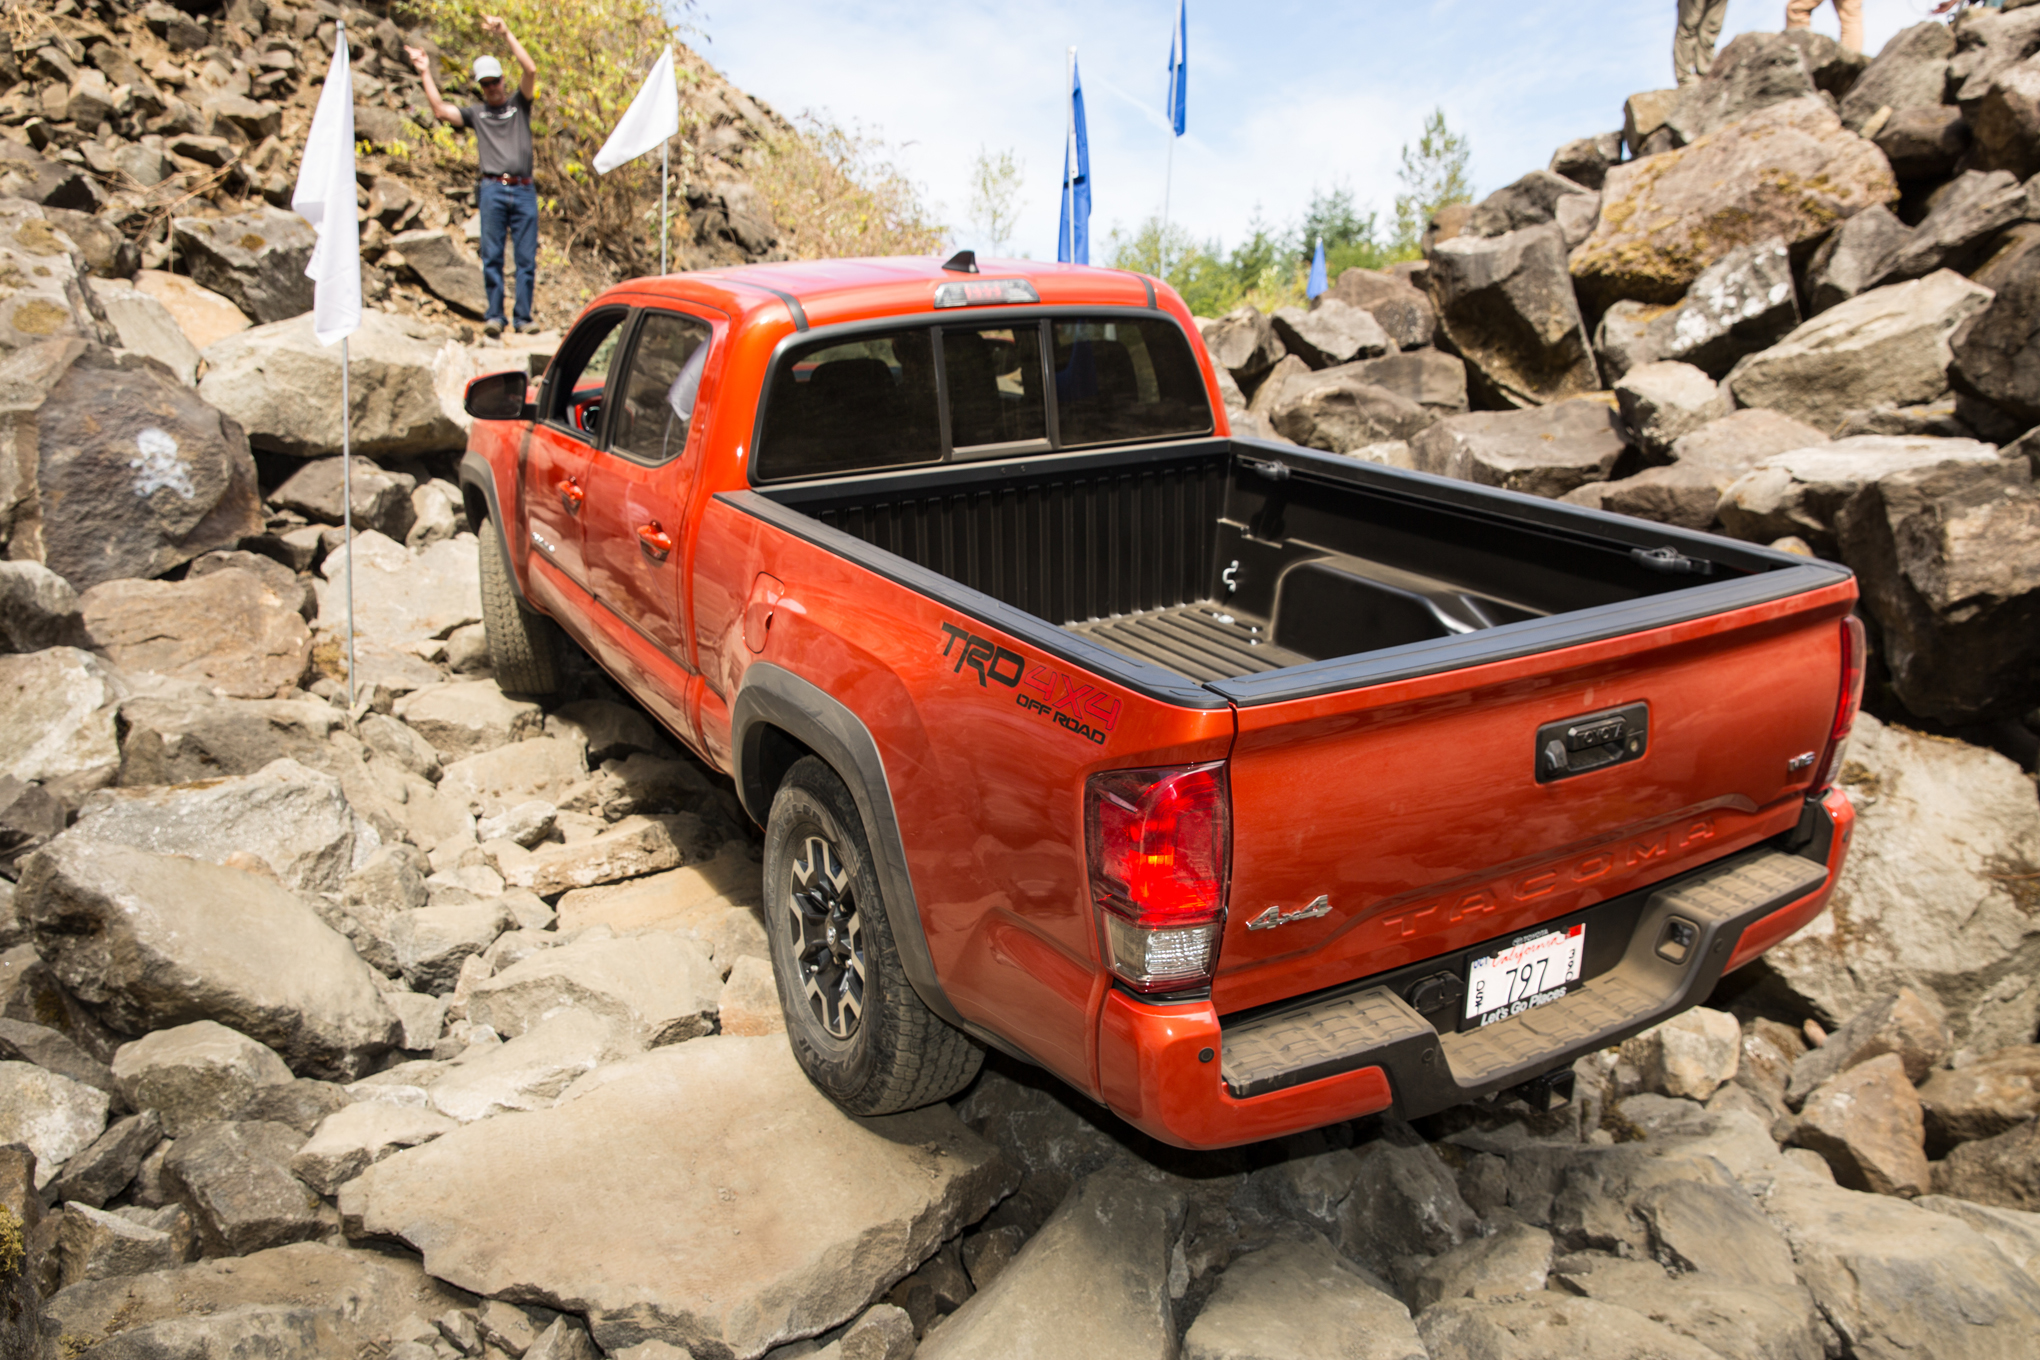 Diagram Of Toyota Tacoma Undercarriage Trusted Wiring Diagrams 10 Most Important Changes To The 2016 Motor Trend 2000 Spare Tire